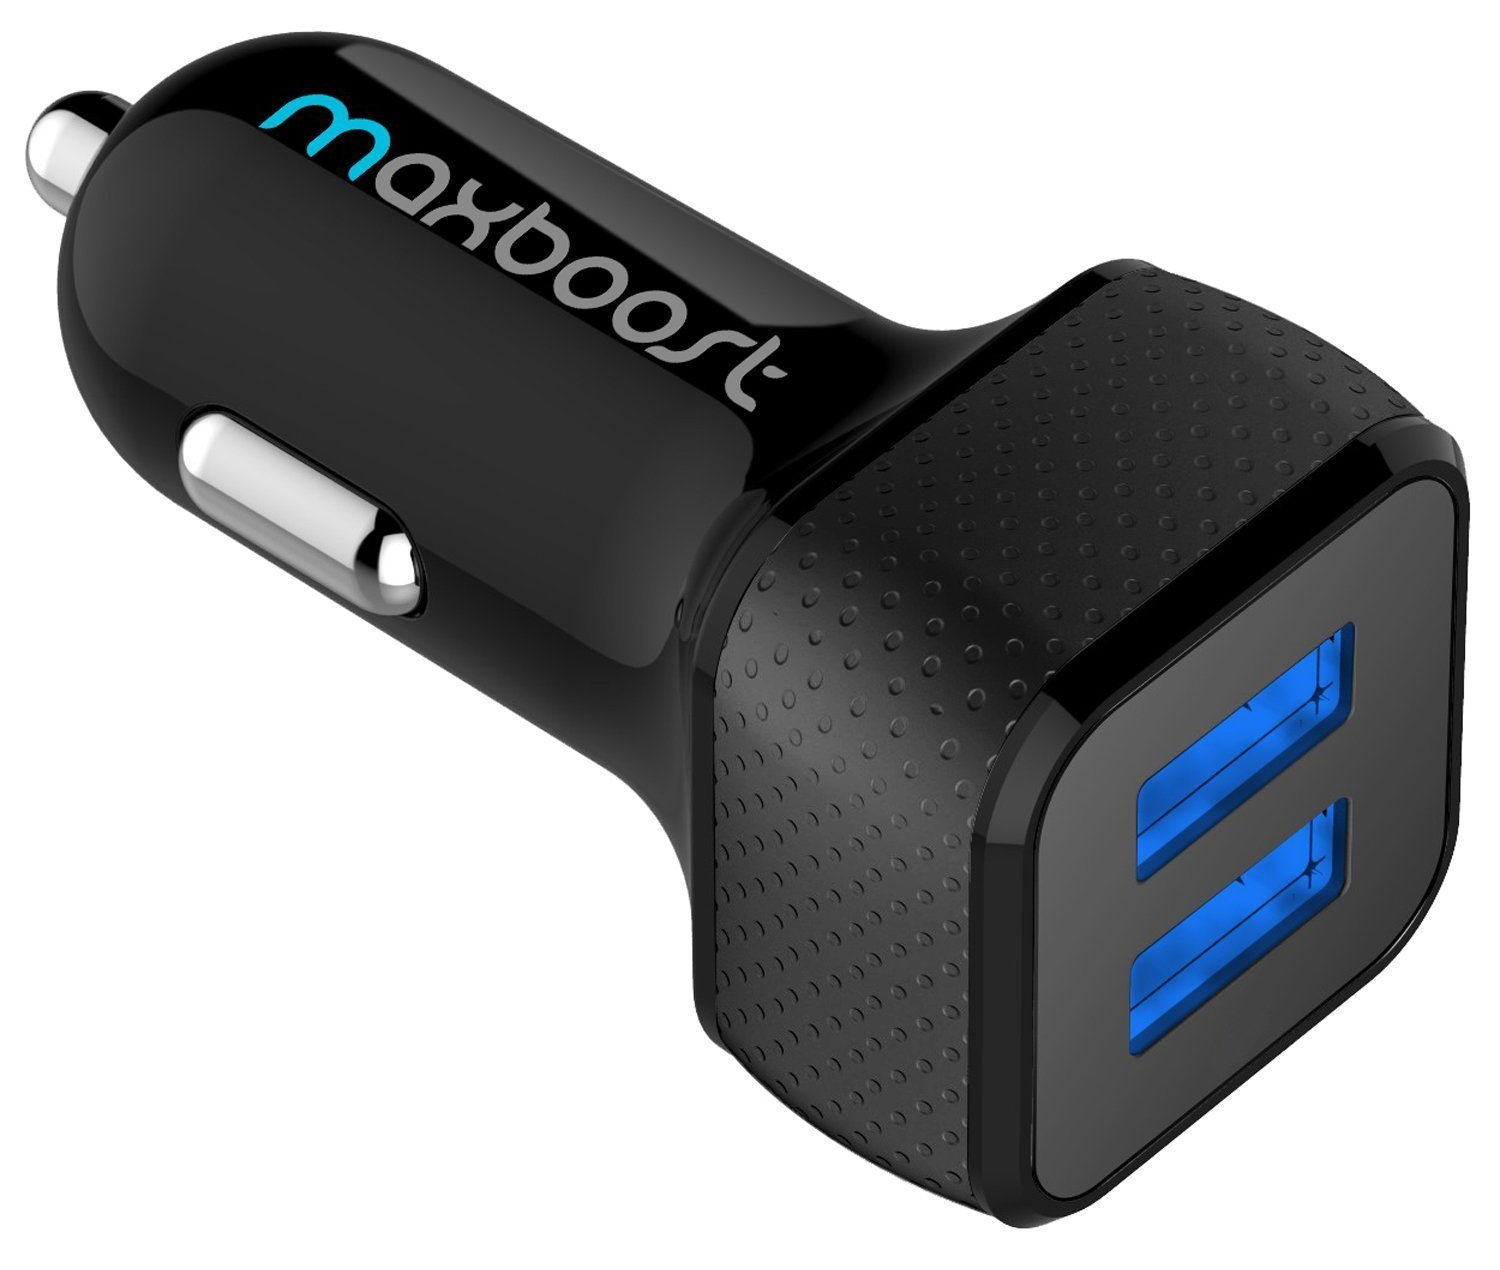 Maxboost Car Charger with SmartUSB Port 4.8A/24W [Black] Portable Charger for iPhone 11 Pro Max XS X 8 7 6s 6 Plus 5S SE, Galaxy S10 S9 S8 Edge, Note 10 9 8, LG G7 G8, HTC, Nexus, Pixel, iPad Pro